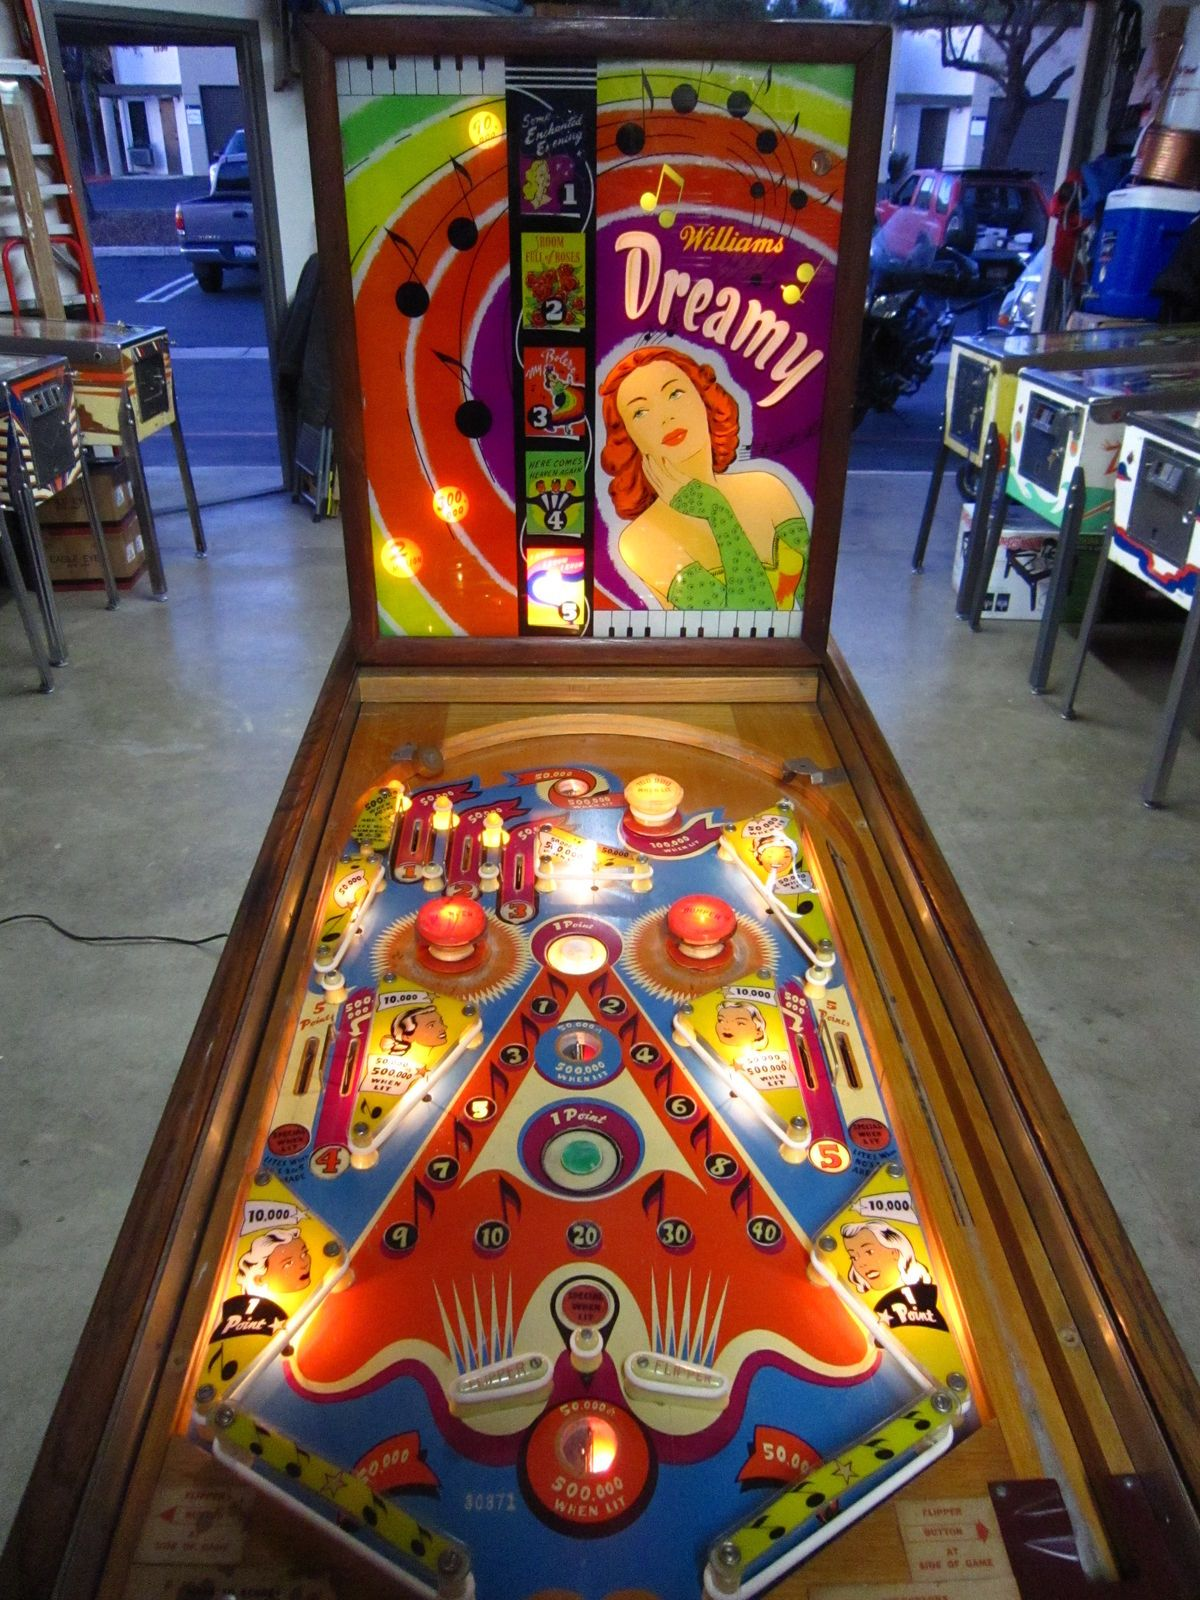 Juegos De Mesa Billar 1961 Dreamy Quotwilliams Quotpinball Machine Pinballs De Los